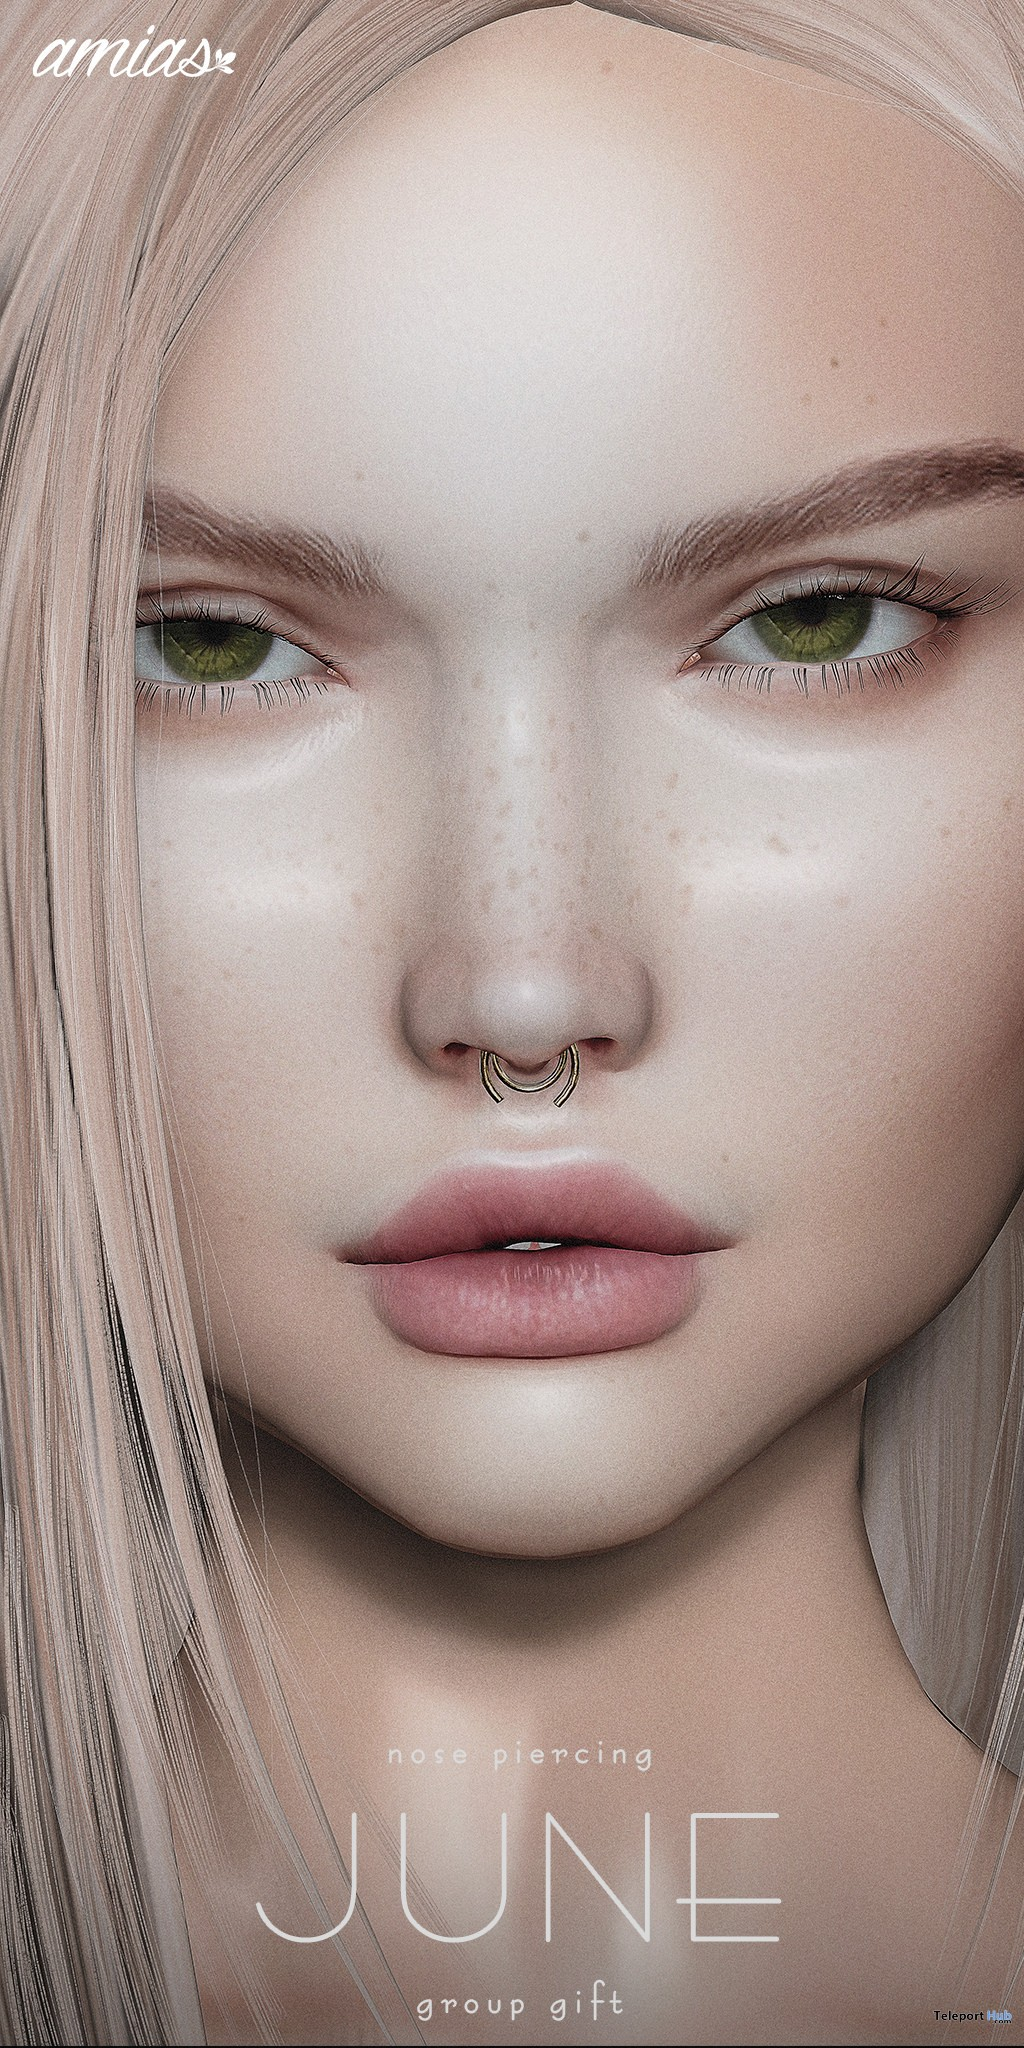 Nose Piercing June 2018 Group Gift by amias - Teleport Hub - teleporthub.com